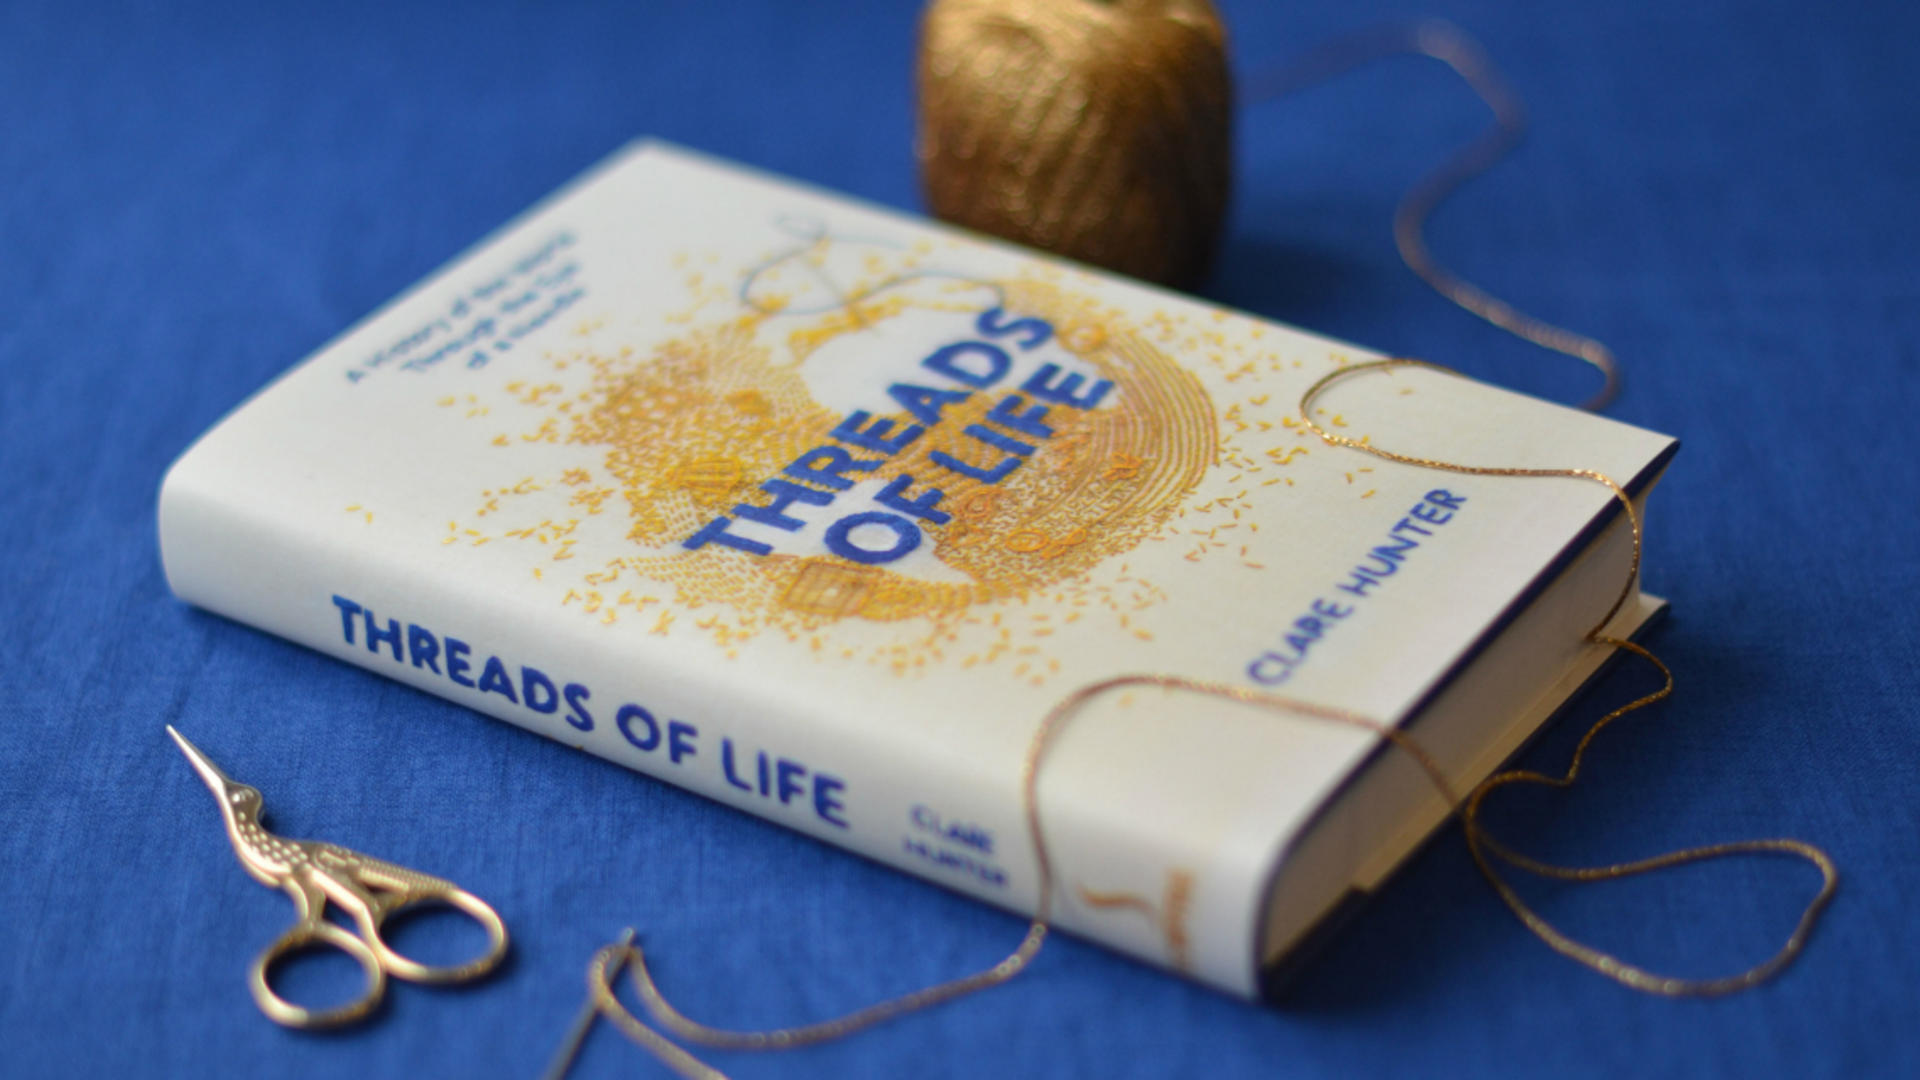 Threads of life hardback book surrounded by thread and scissors